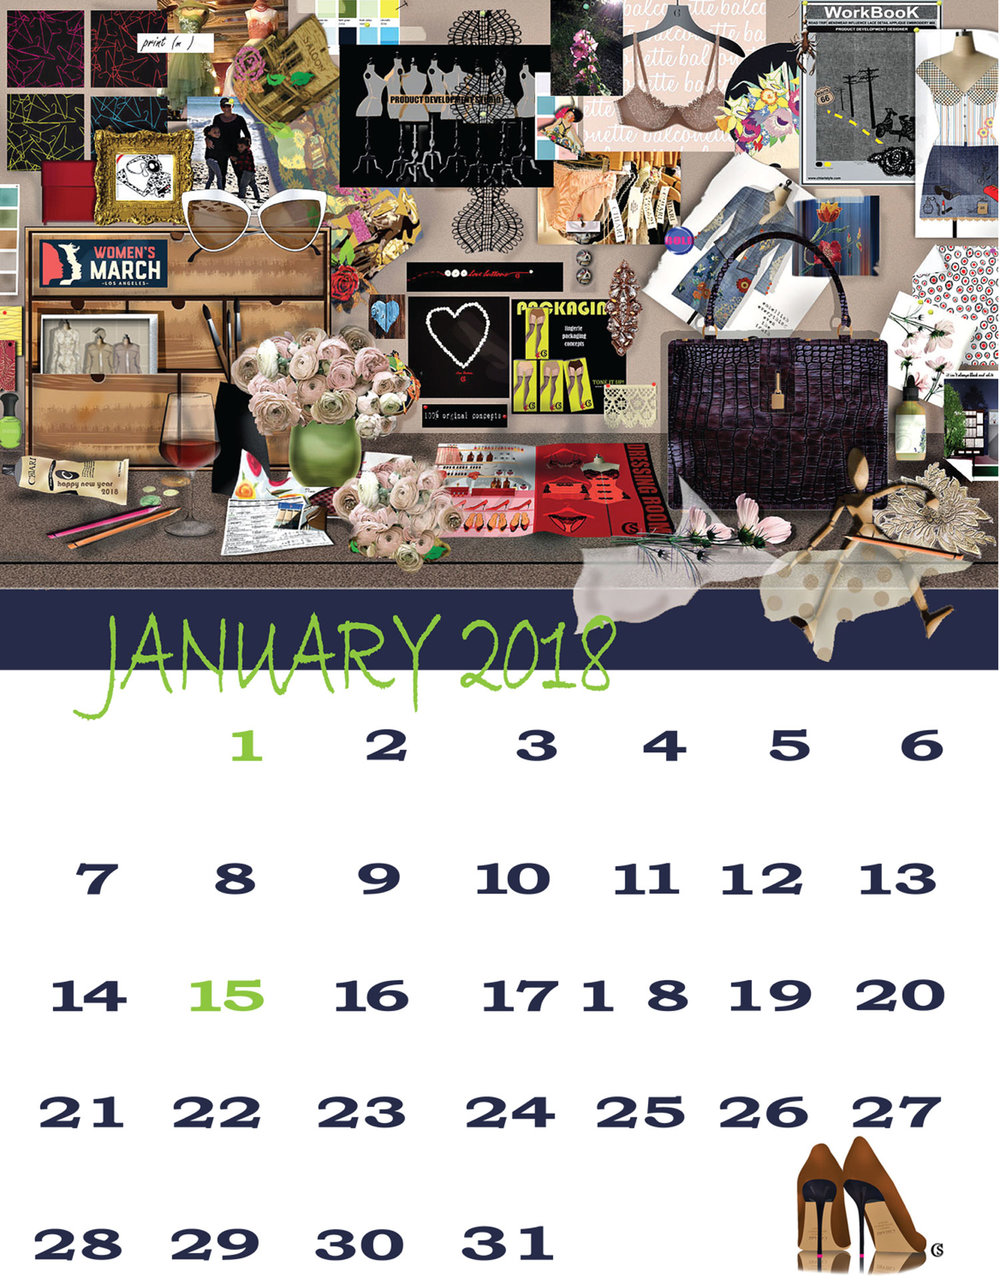 January 2018 Just Fashion Calendar CHIARIstyle